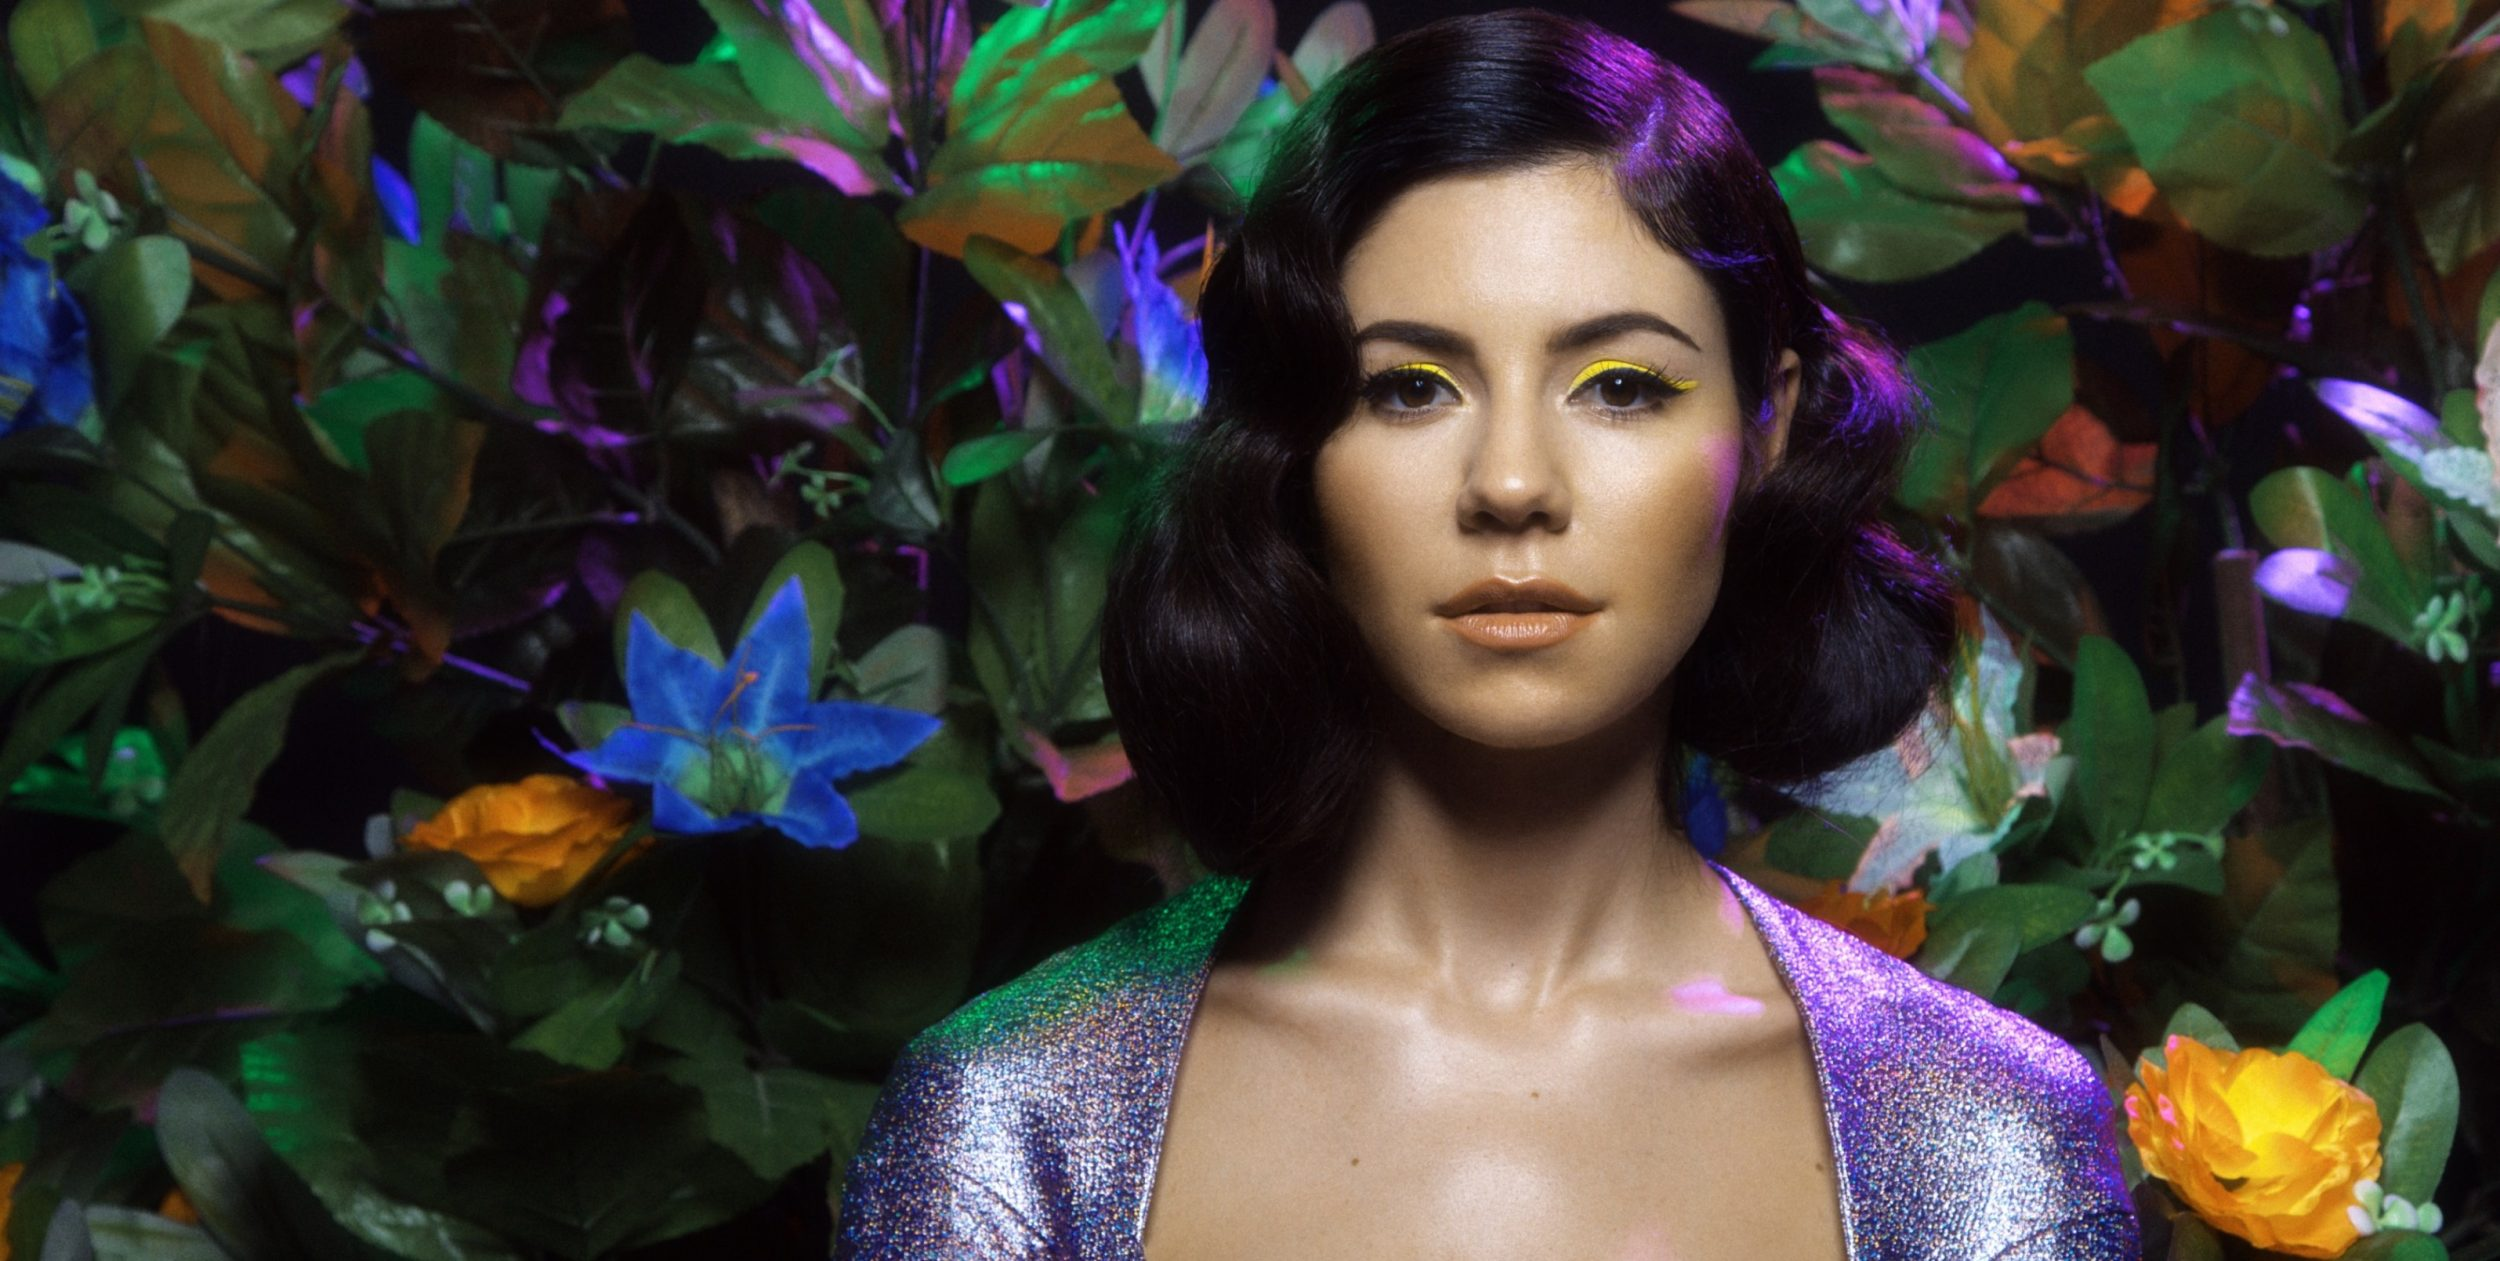 Marina and the diamonds to perform on quot late night with seth meyers quot